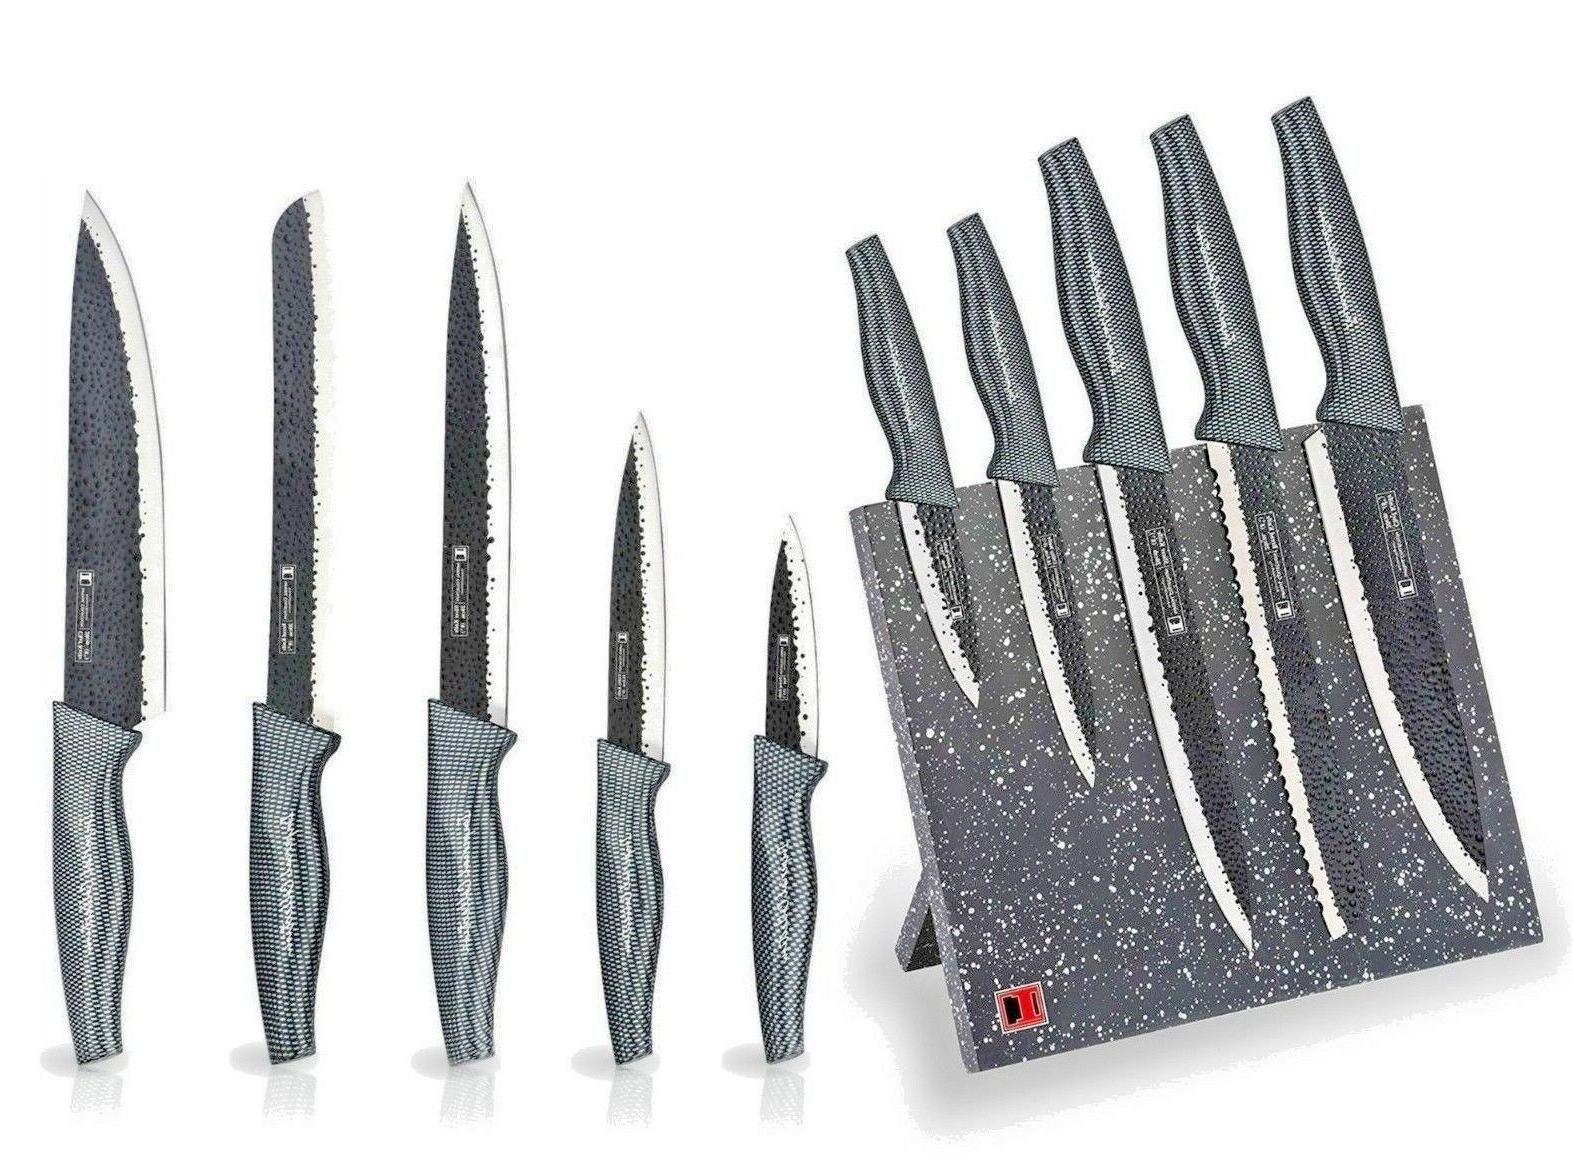 Imperial 6 Pc Stainless Steel Kitchen Knives or Knife Set w/